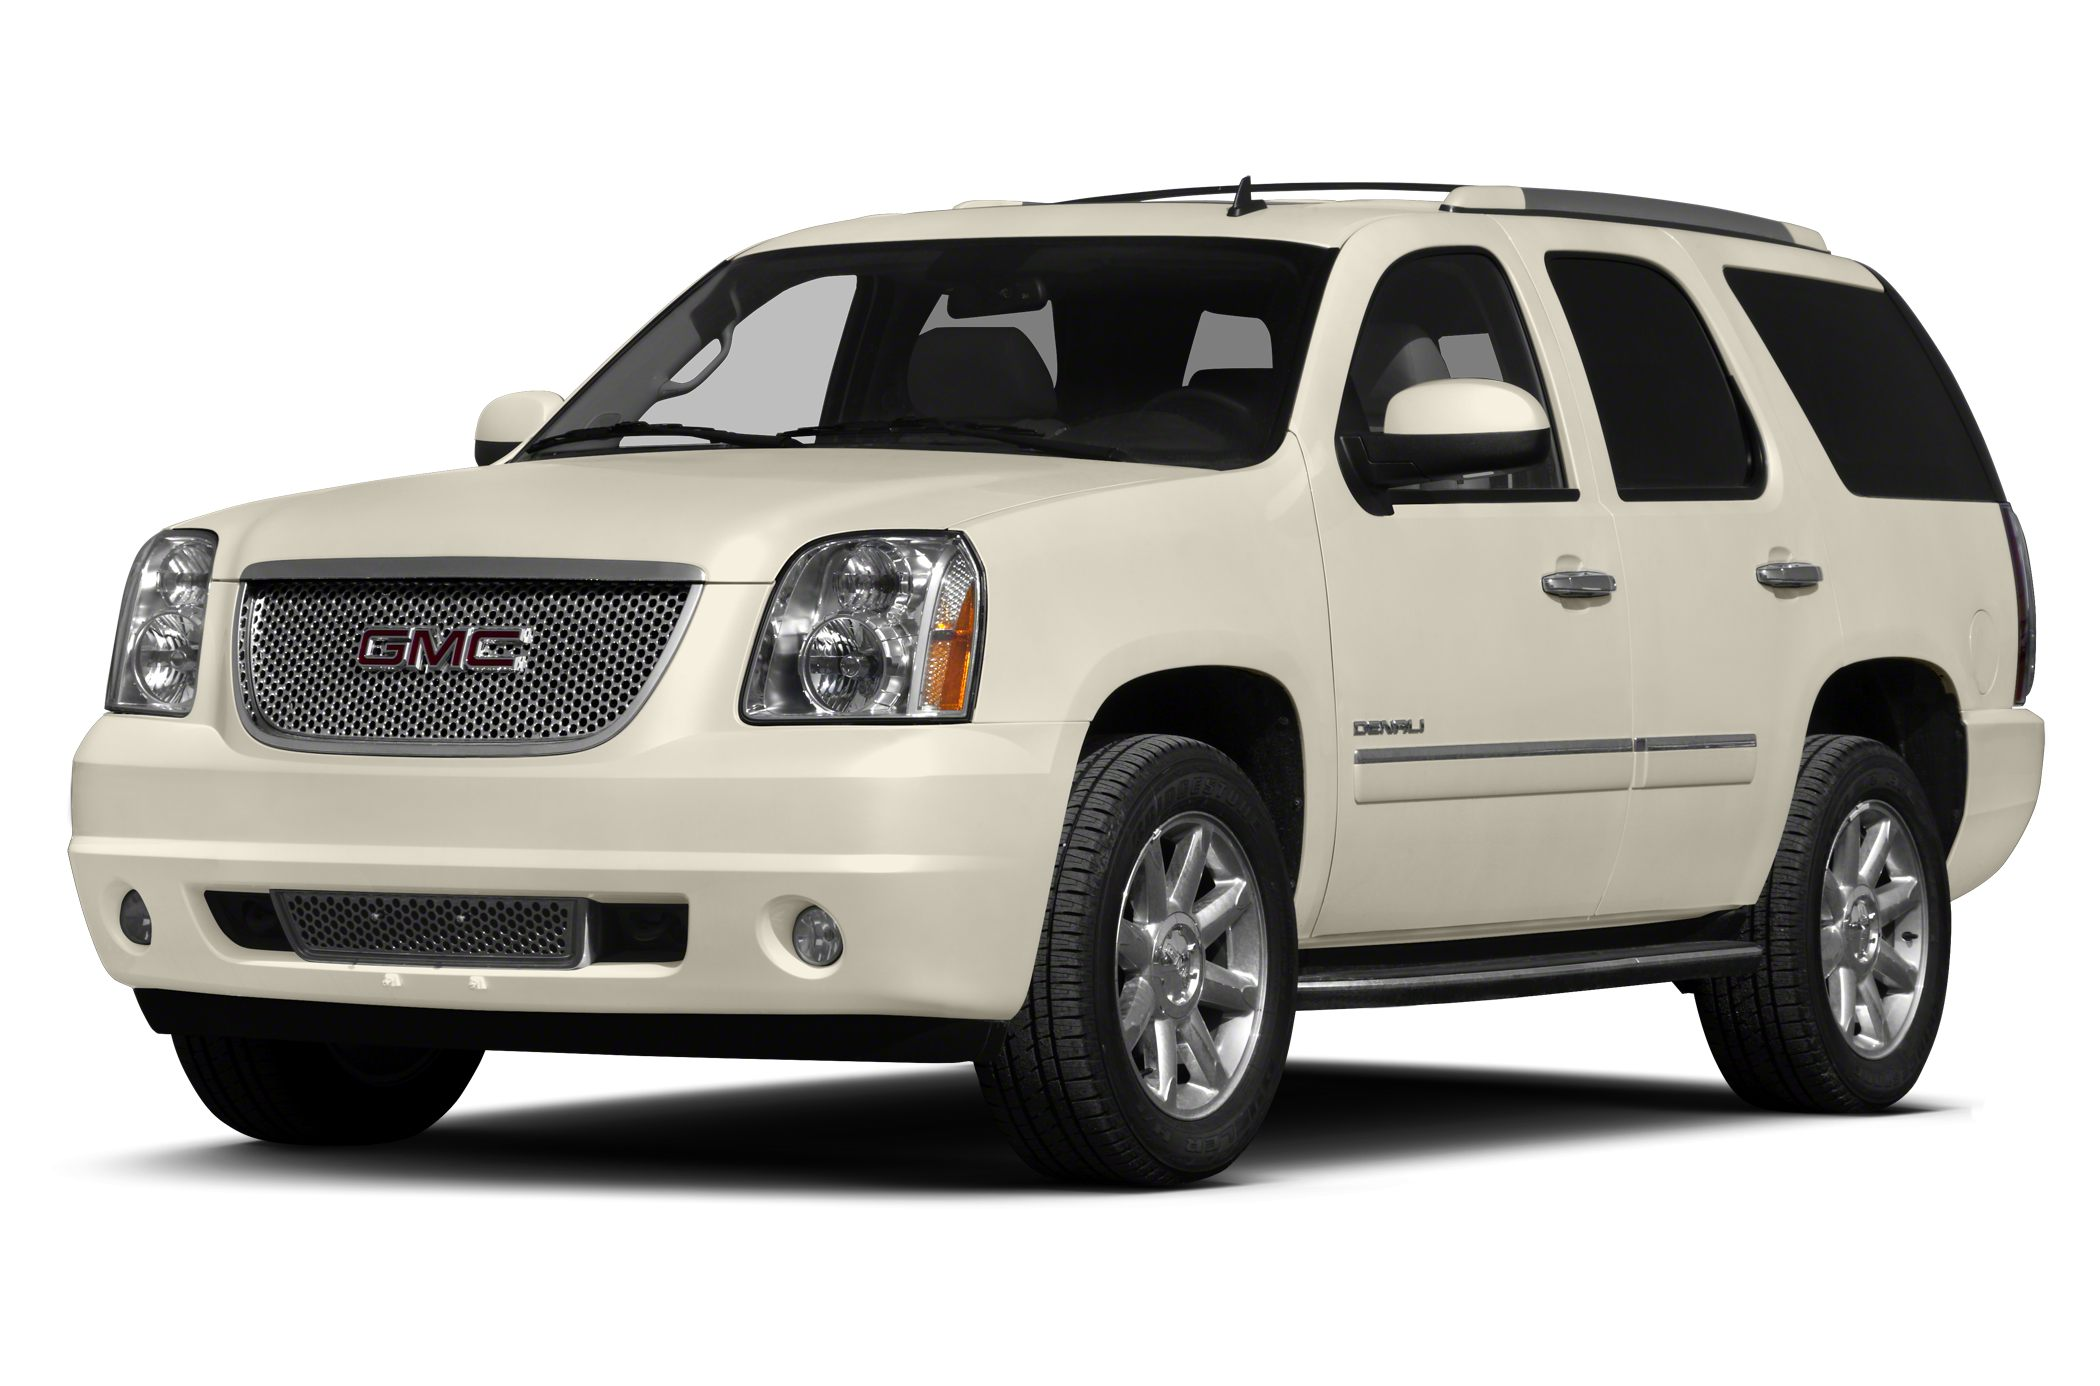 2014 chevrolet tahoe ltz 4x4 information. Black Bedroom Furniture Sets. Home Design Ideas